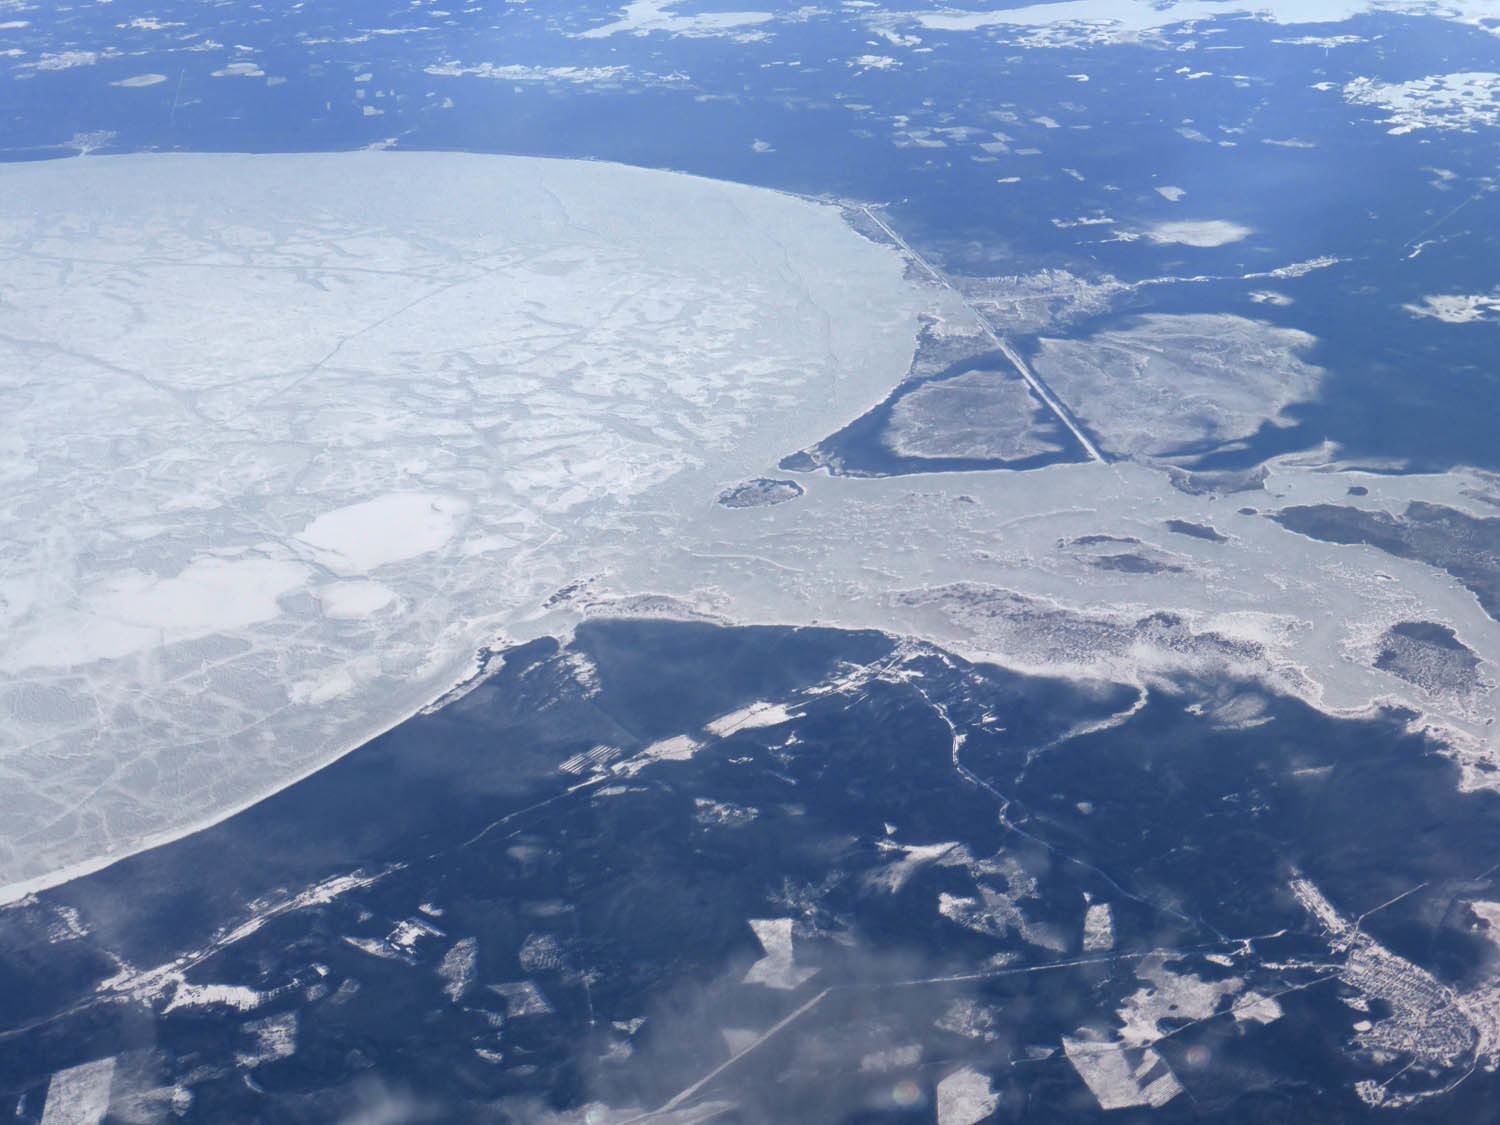 Outfall of the frozen round lake